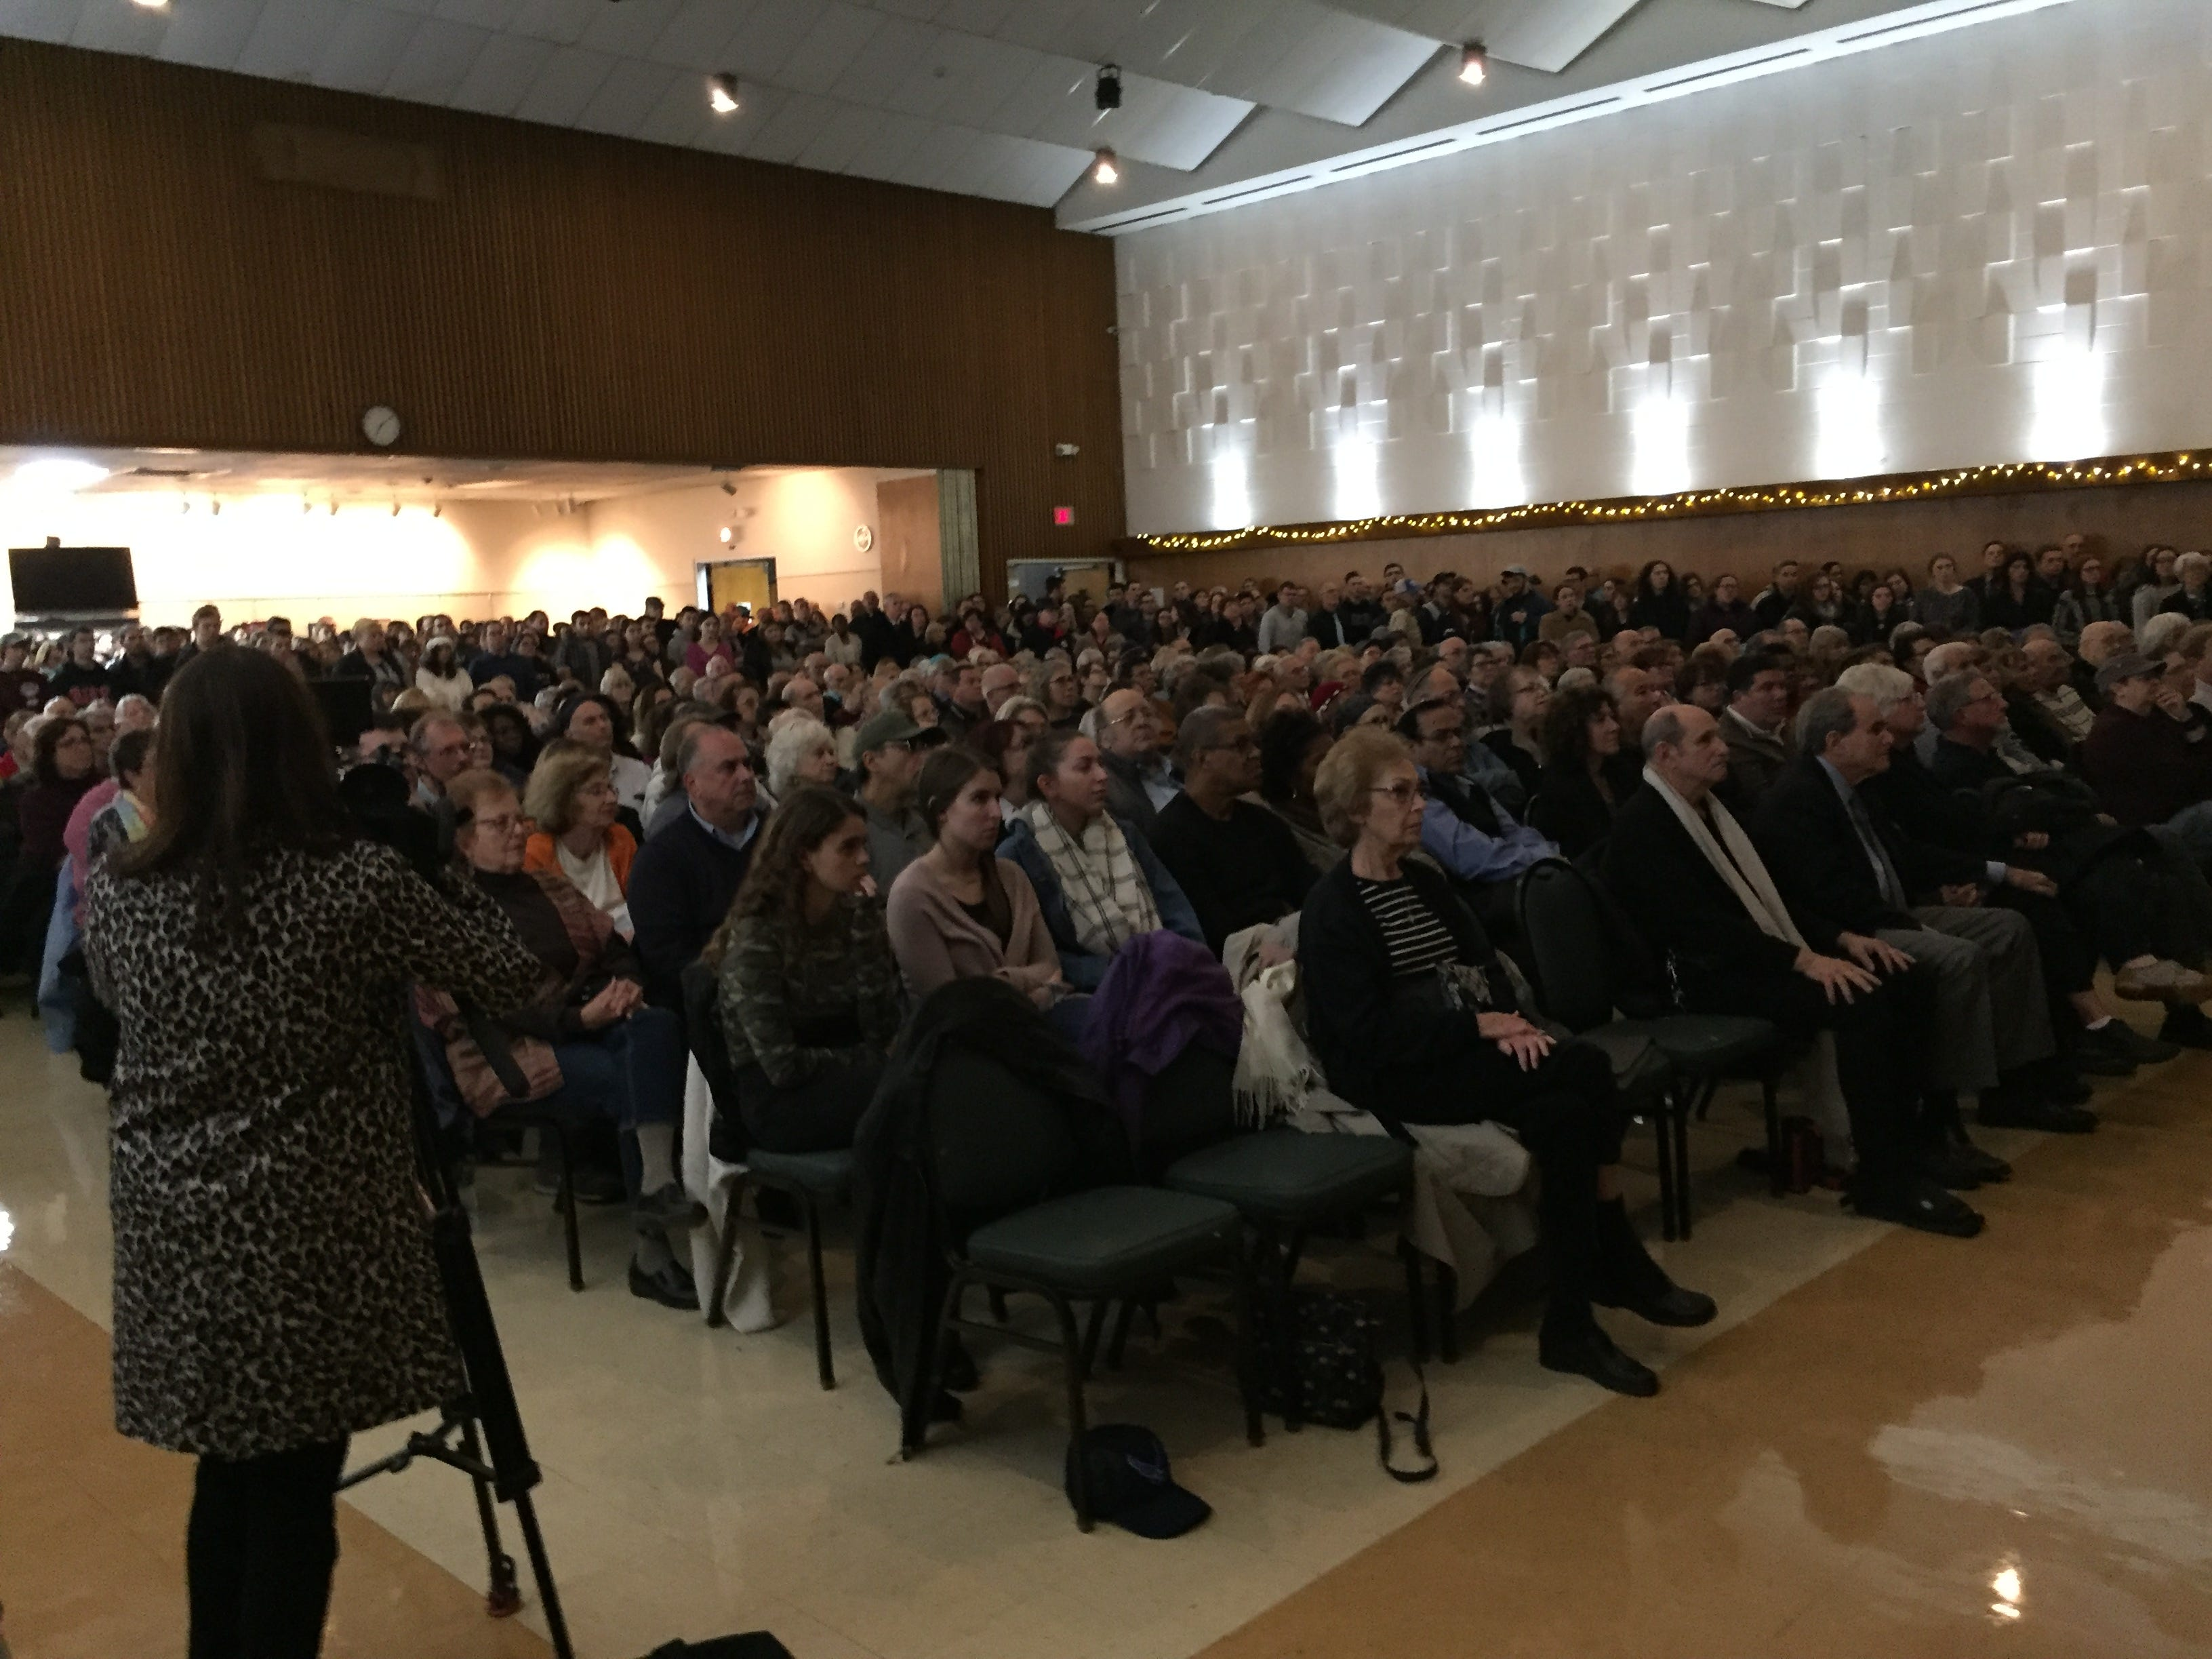 At least 750 people attended a vigil at the Jewish Community Center of Binghamton Monday following the shooting at the Tree of Life Congregation Synagogue in Pittsburgh.